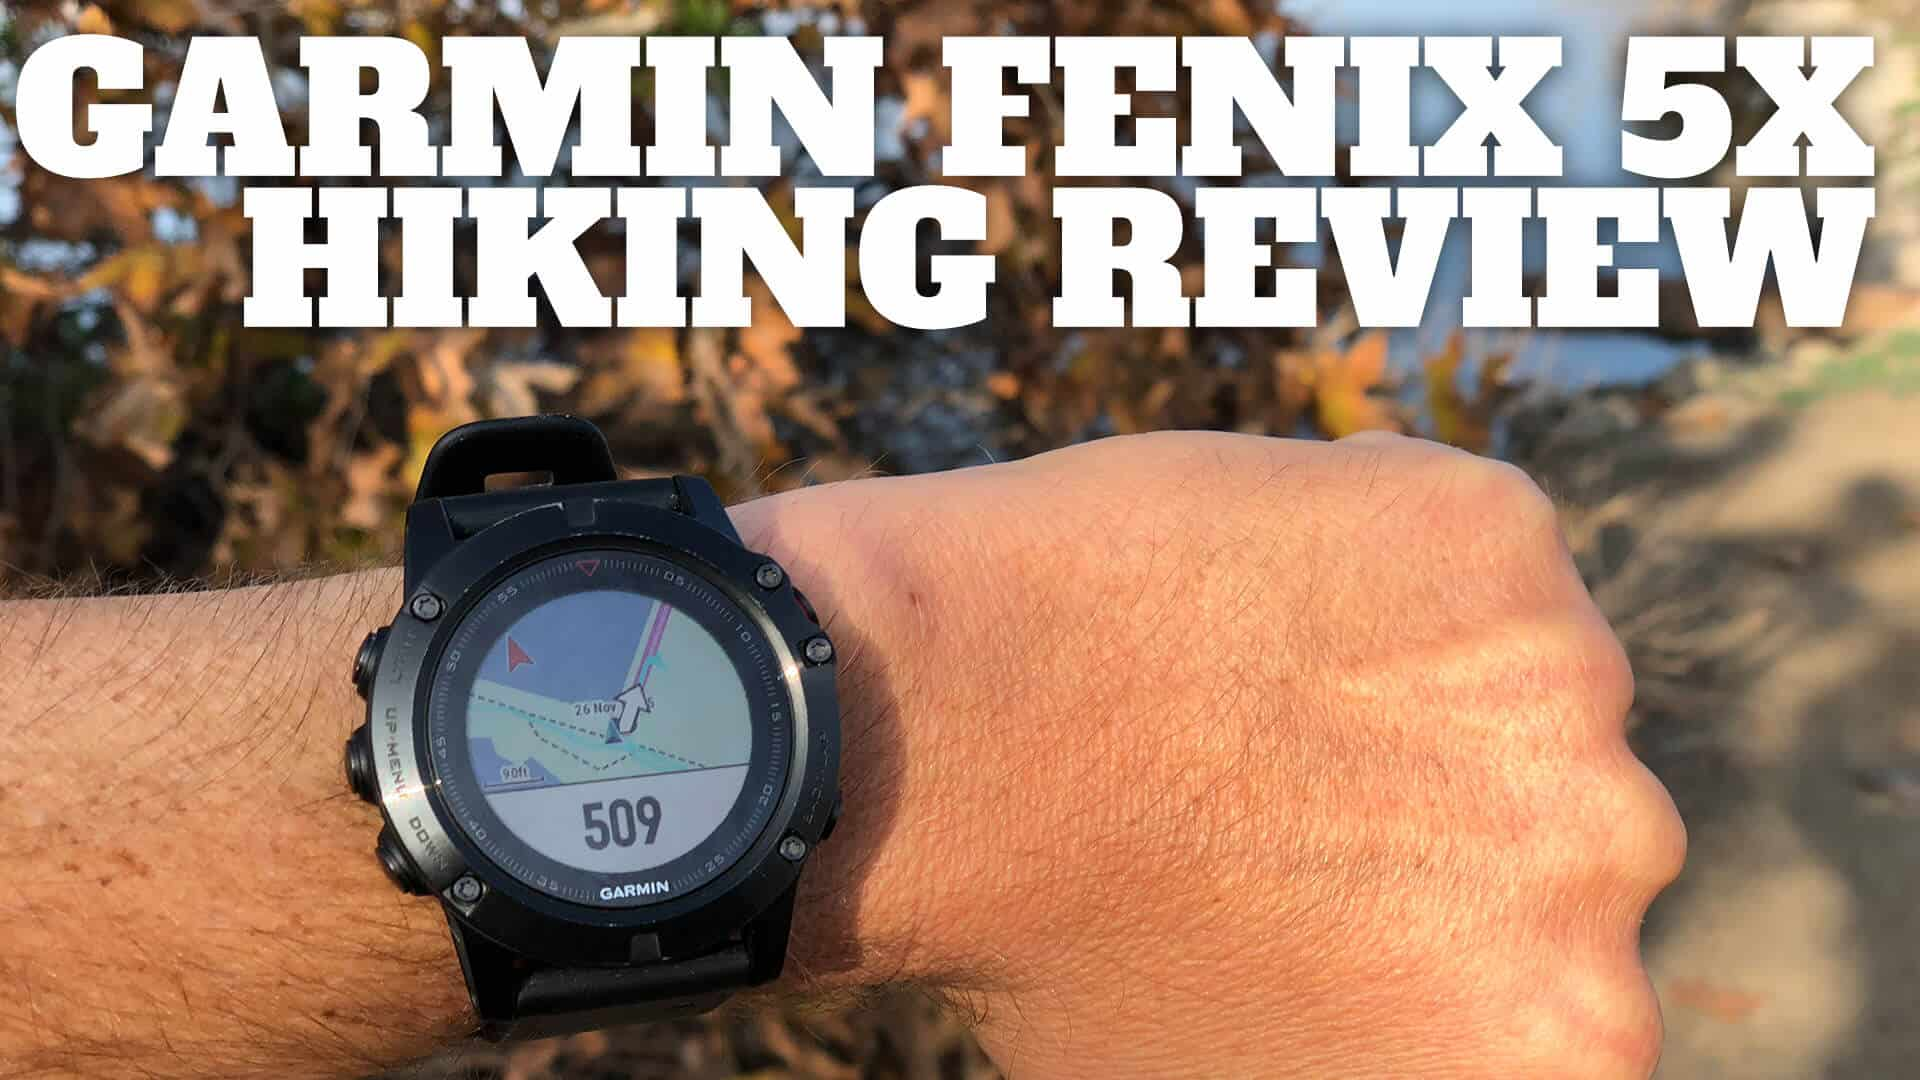 Garmin Fenix 5x Hiking Review & Easy Use Guide - HikingGuy com